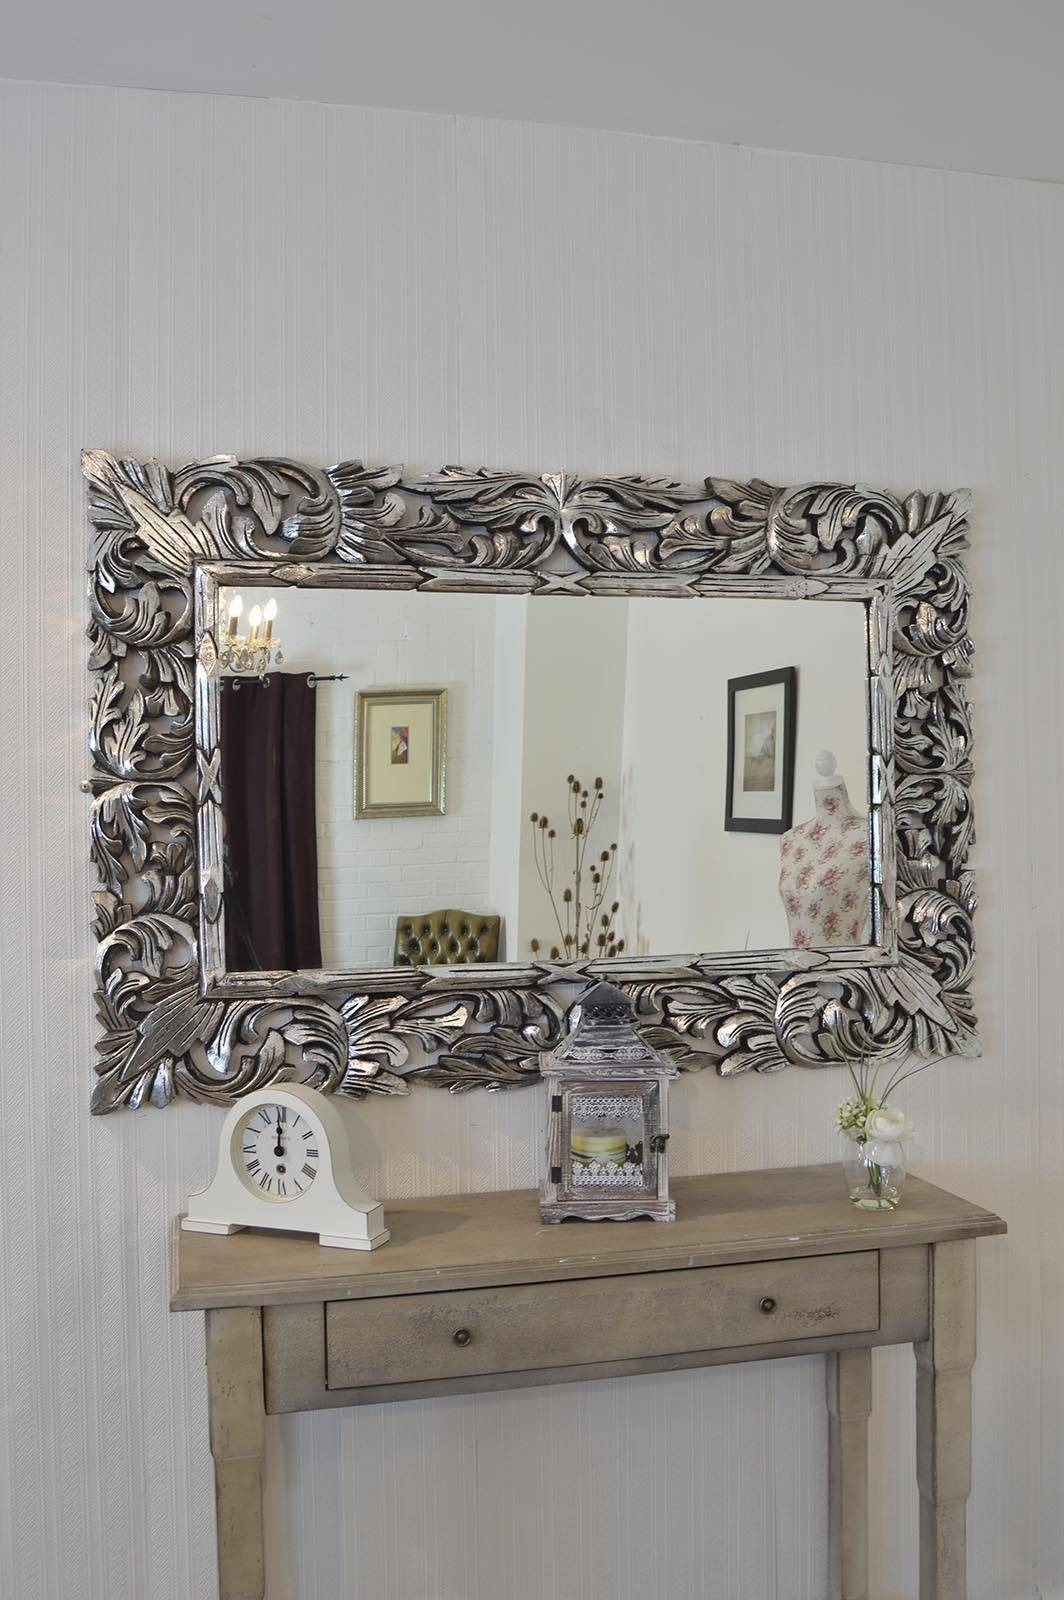 2019 Best Of Large Ornate Silver Mirrors